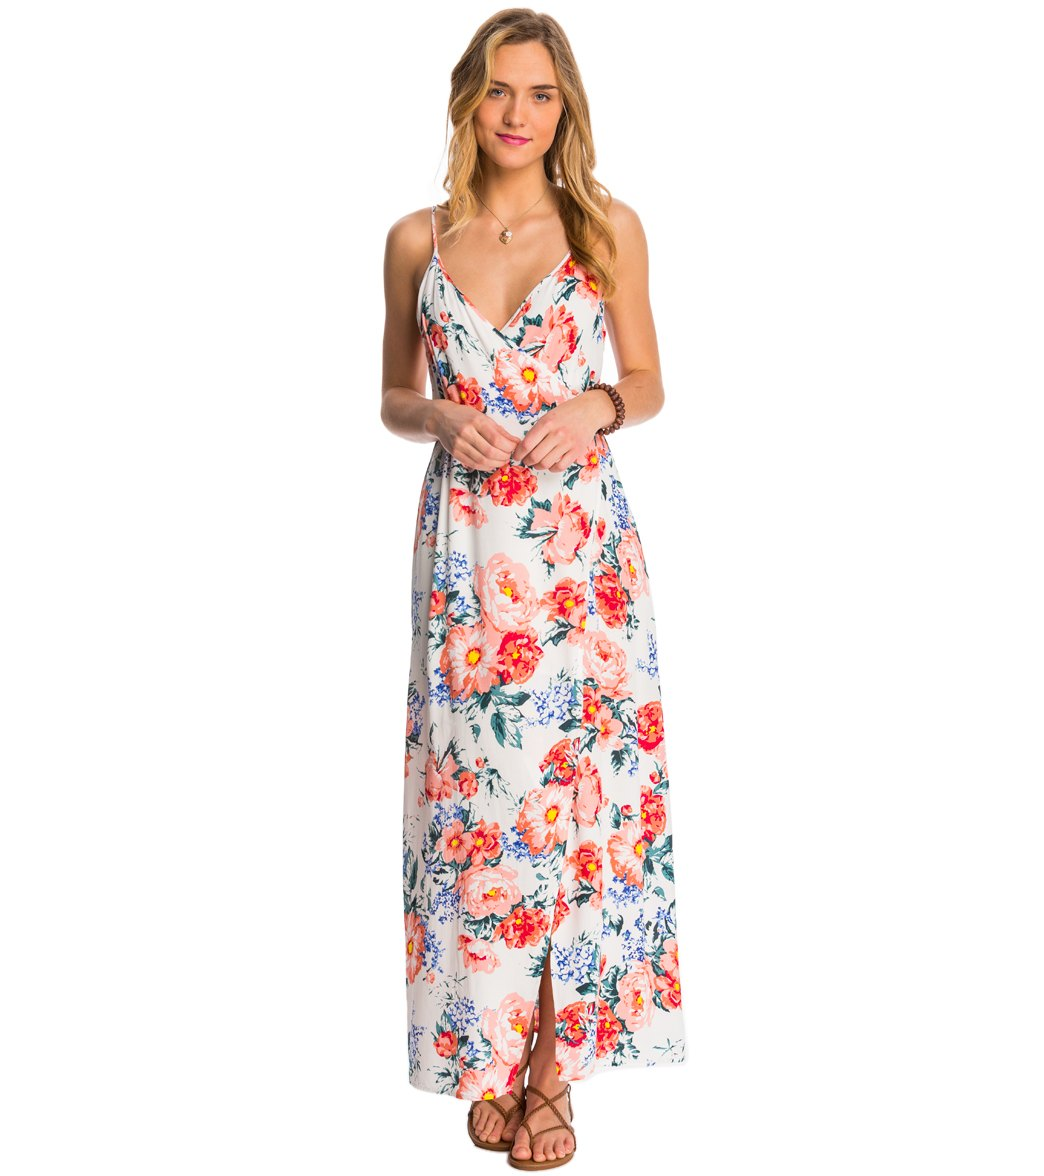 661bea81d7a MINKPINK Little Blooms Maxi Wrap Dress at SwimOutlet.com - Free Shipping